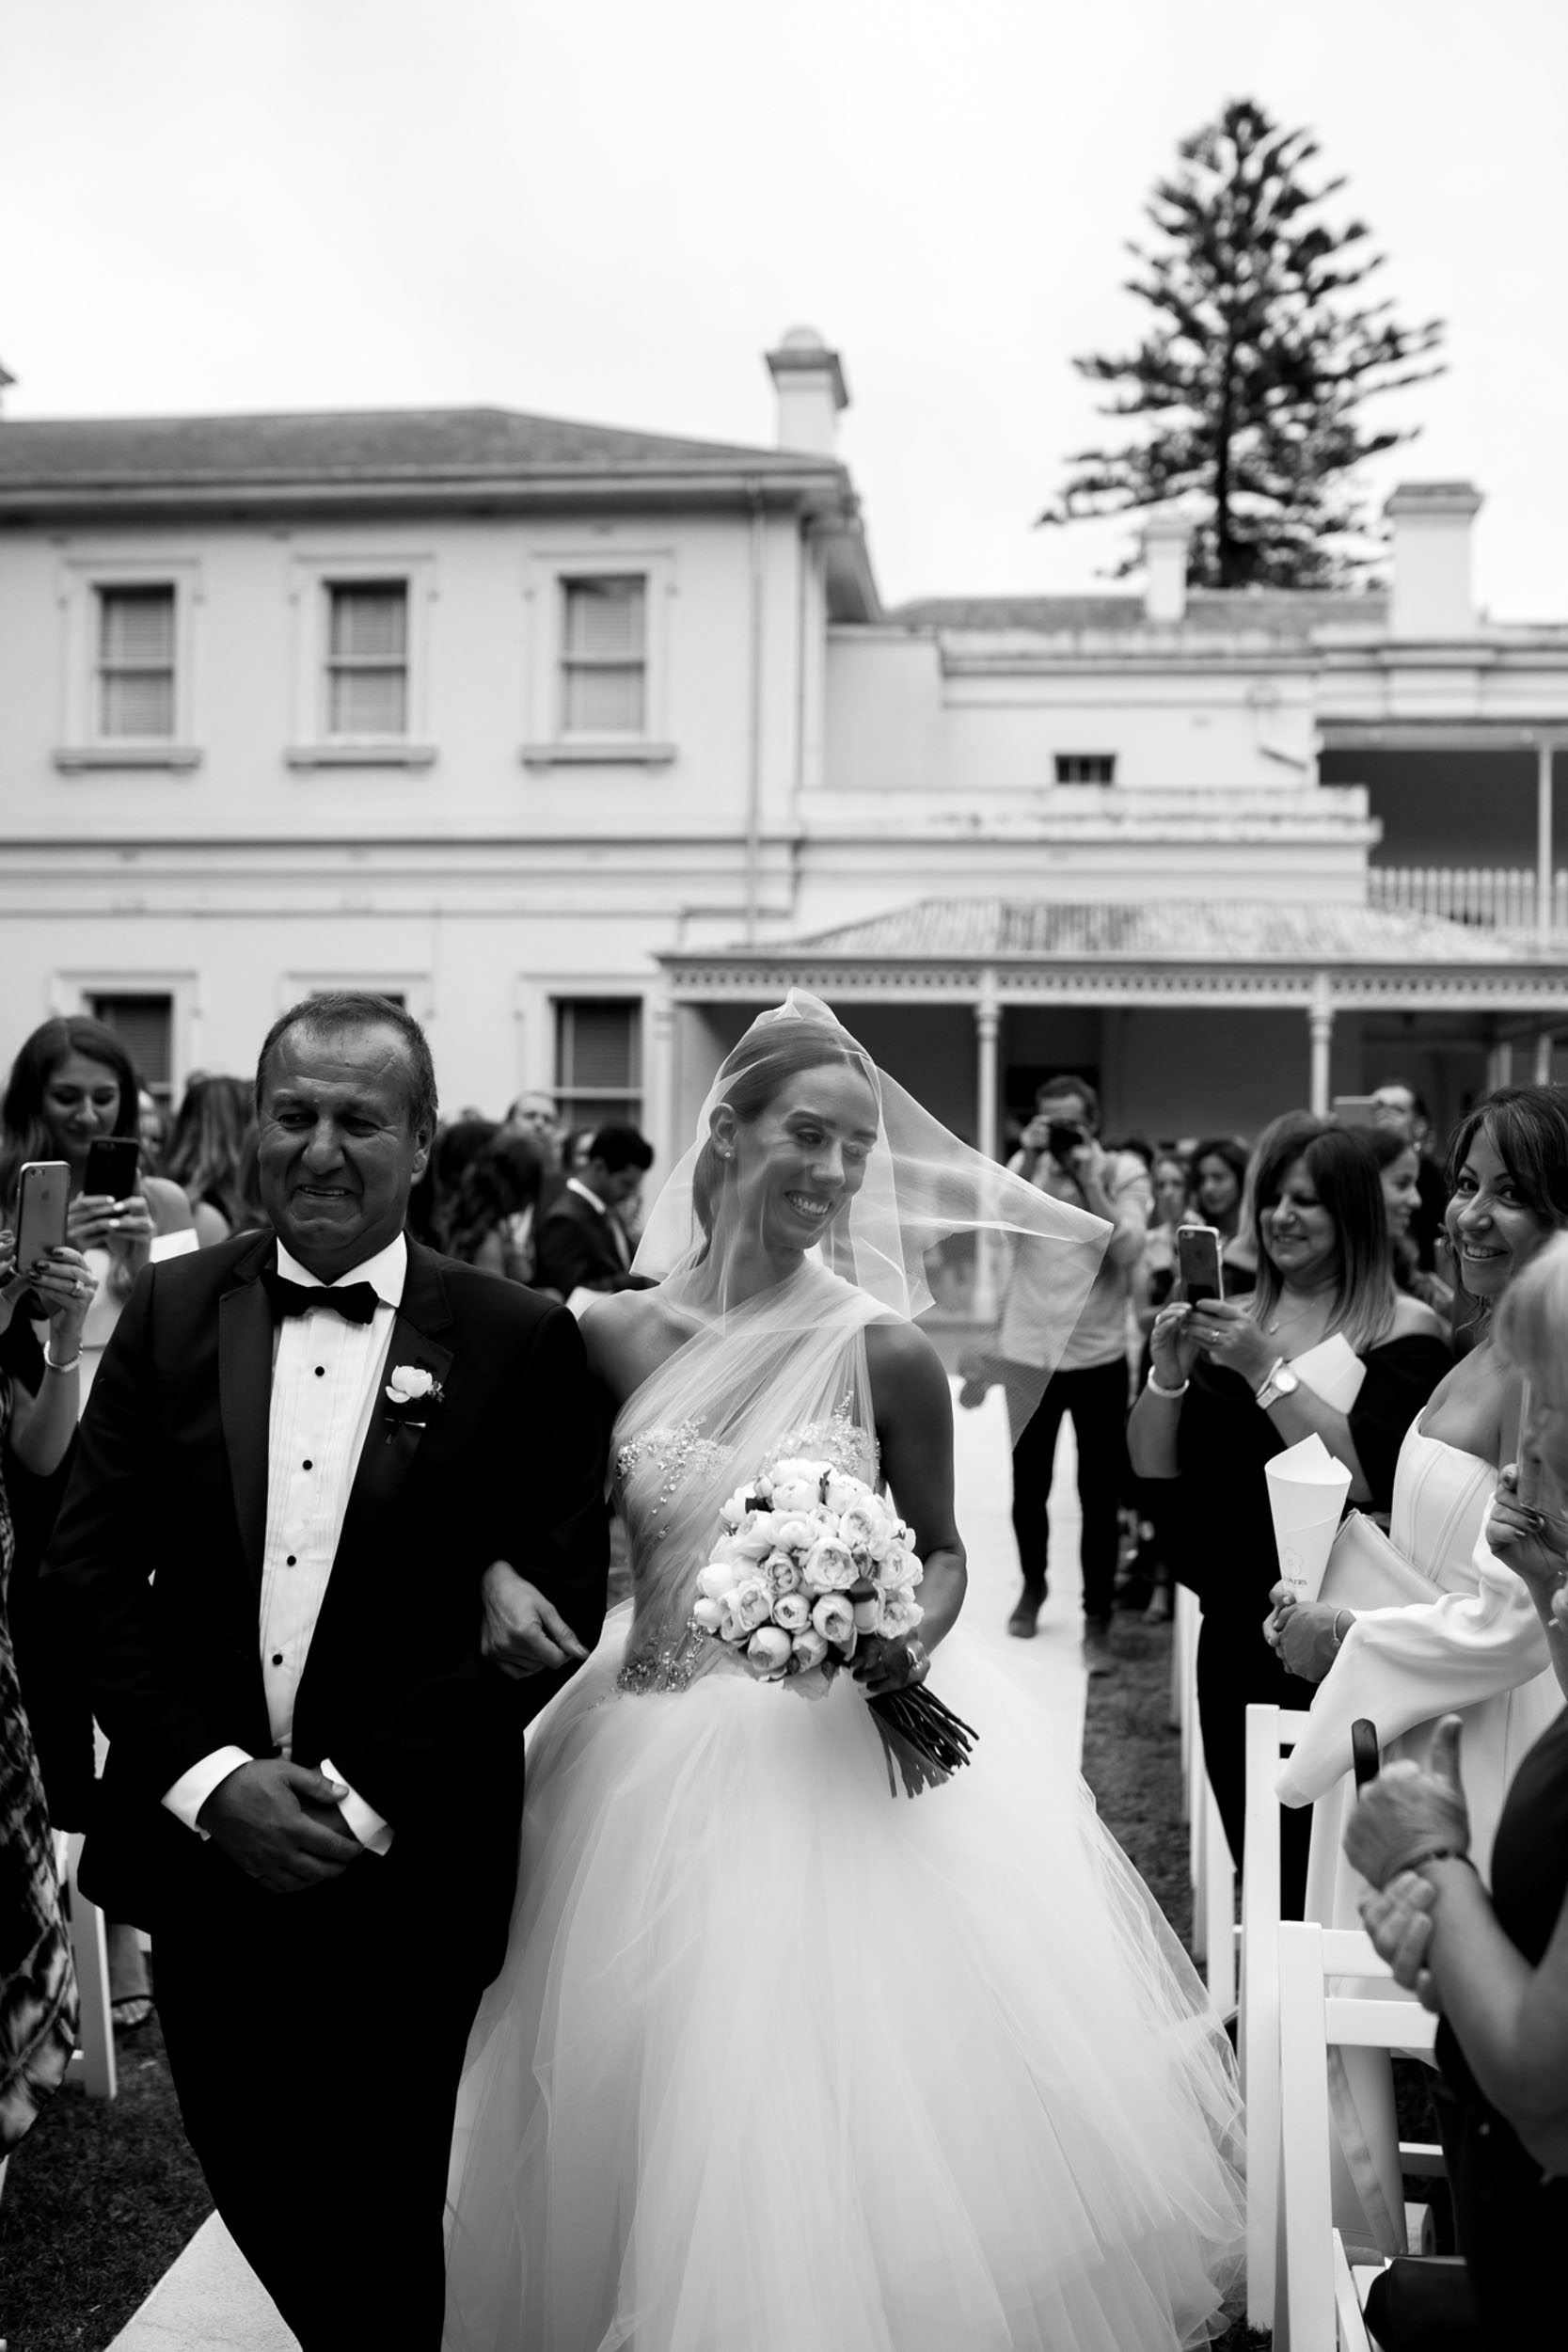 White Vine Photography - Melbourne Wedding Photographer - Classic Carousel Albert Park Wedding (53 of 114).jpg